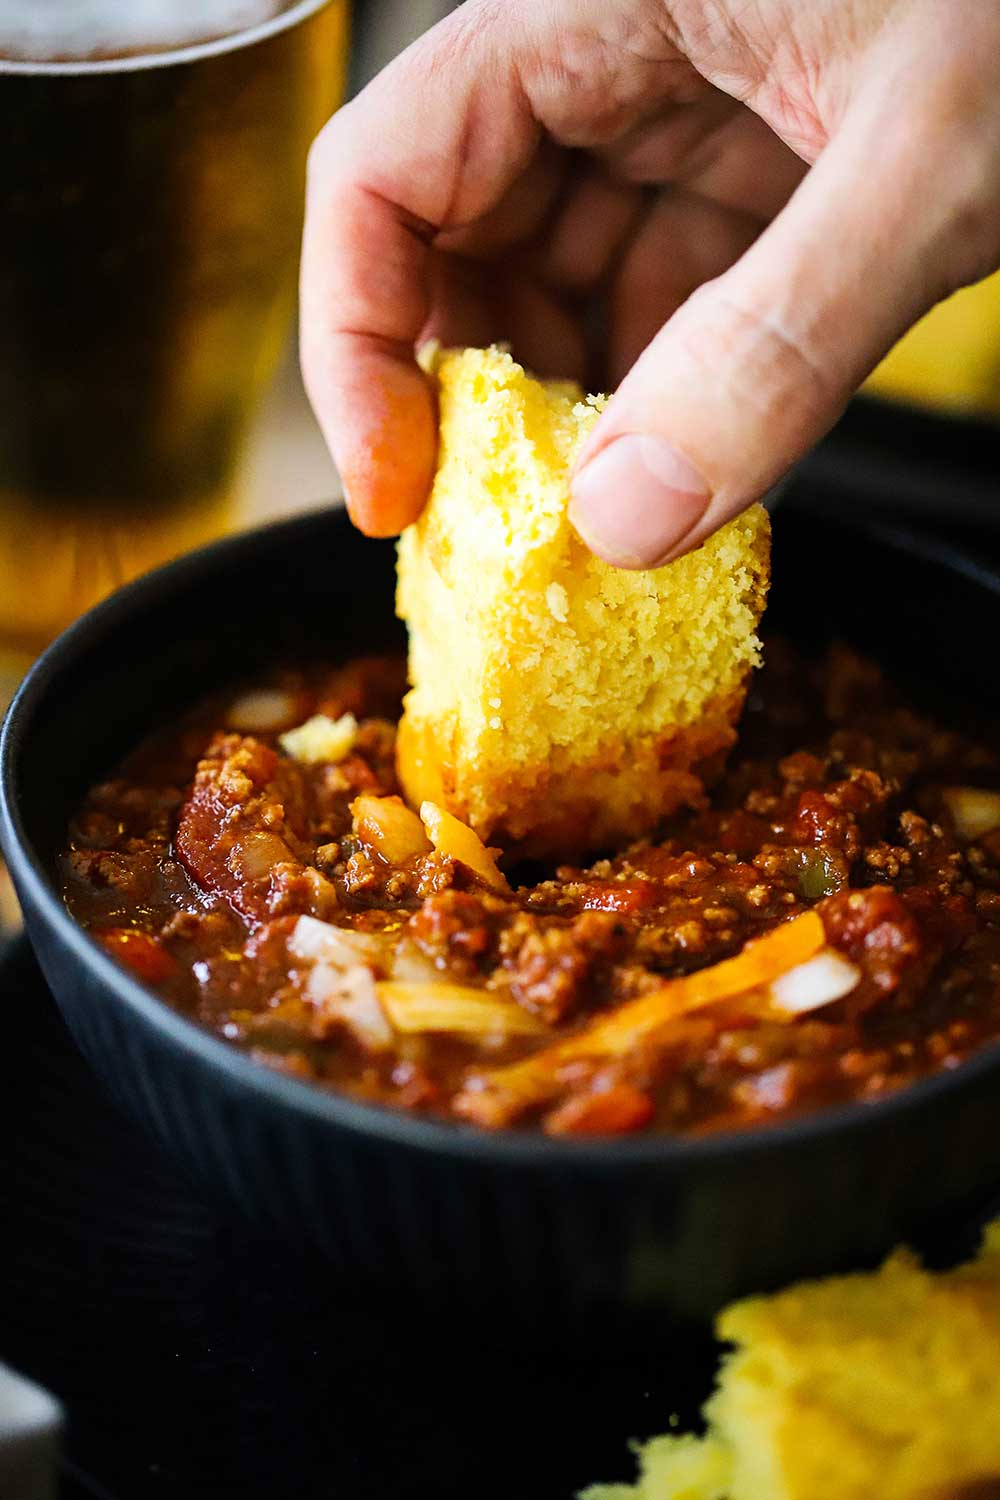 A hand dipping a slice of homemade cornbread into a bowl of turkey chili.